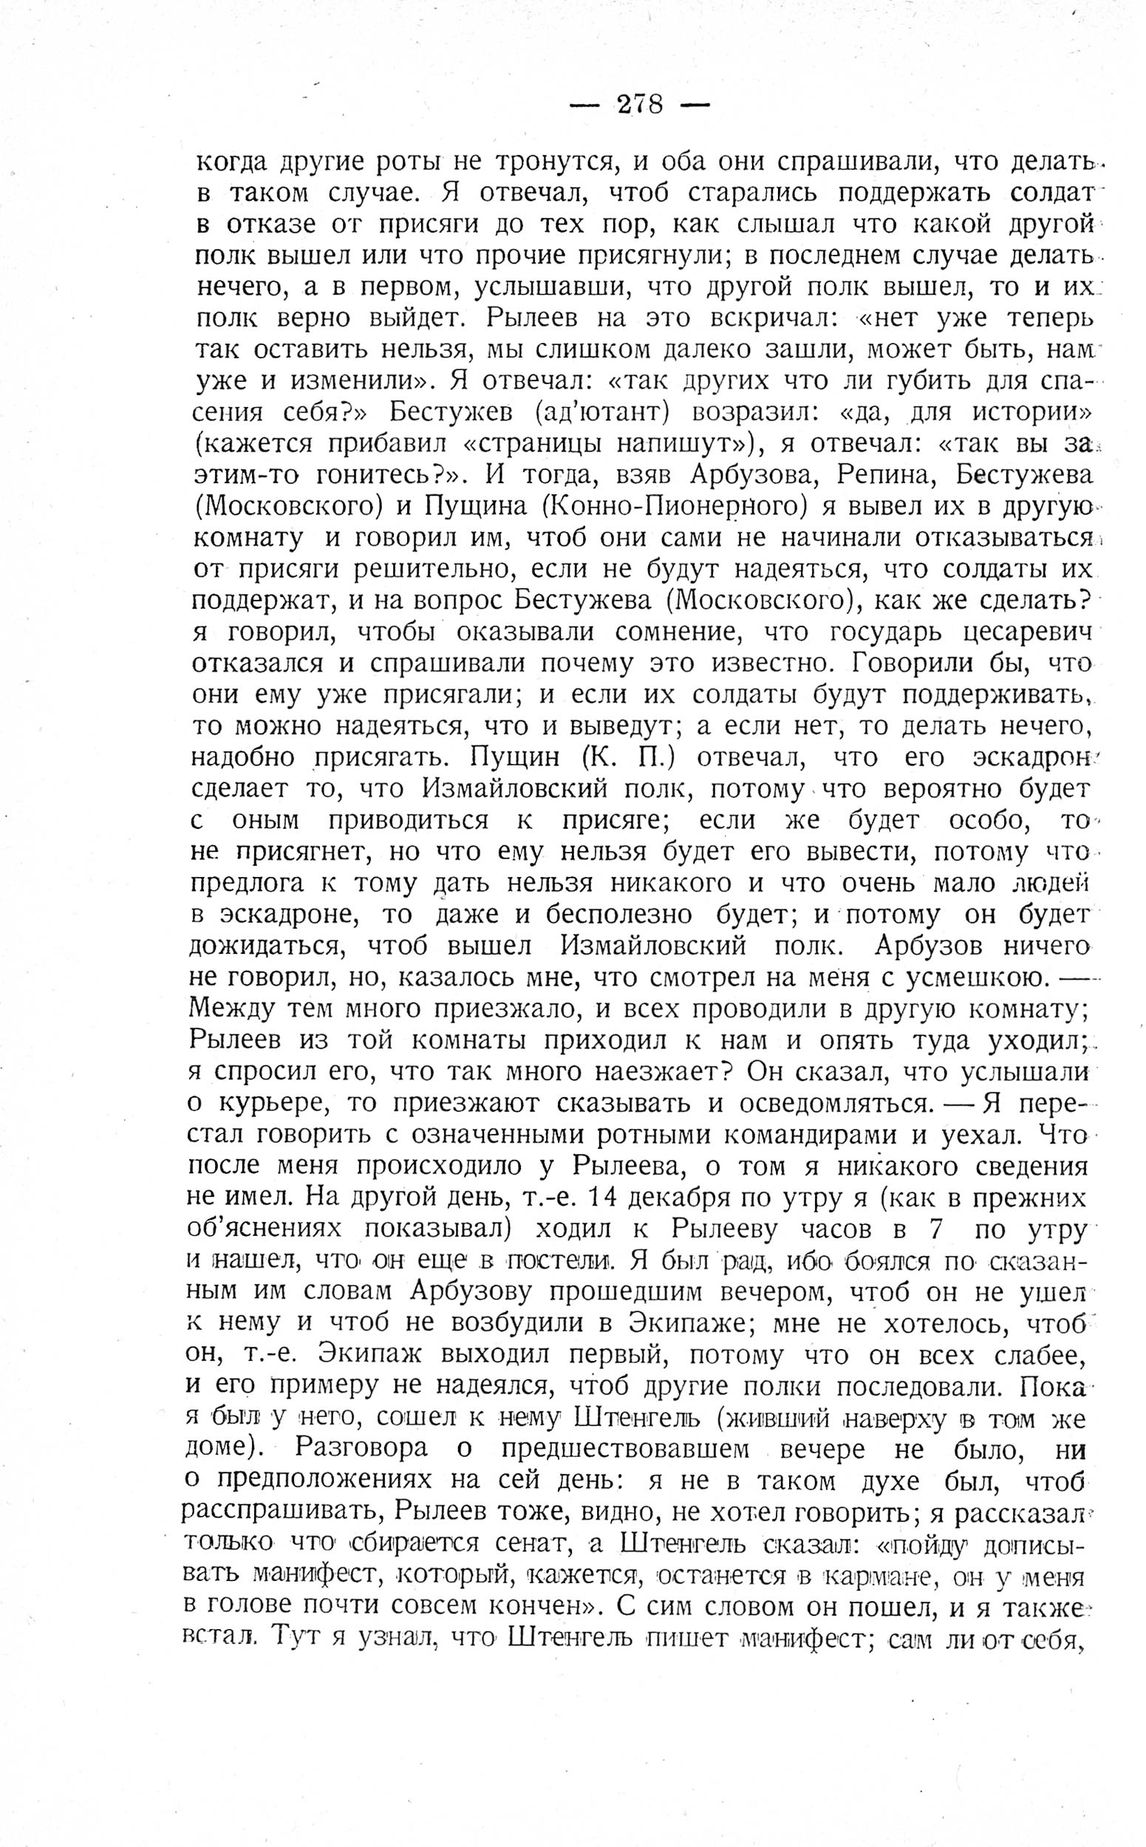 http://elib.shpl.ru/pages/625861/zooms/7